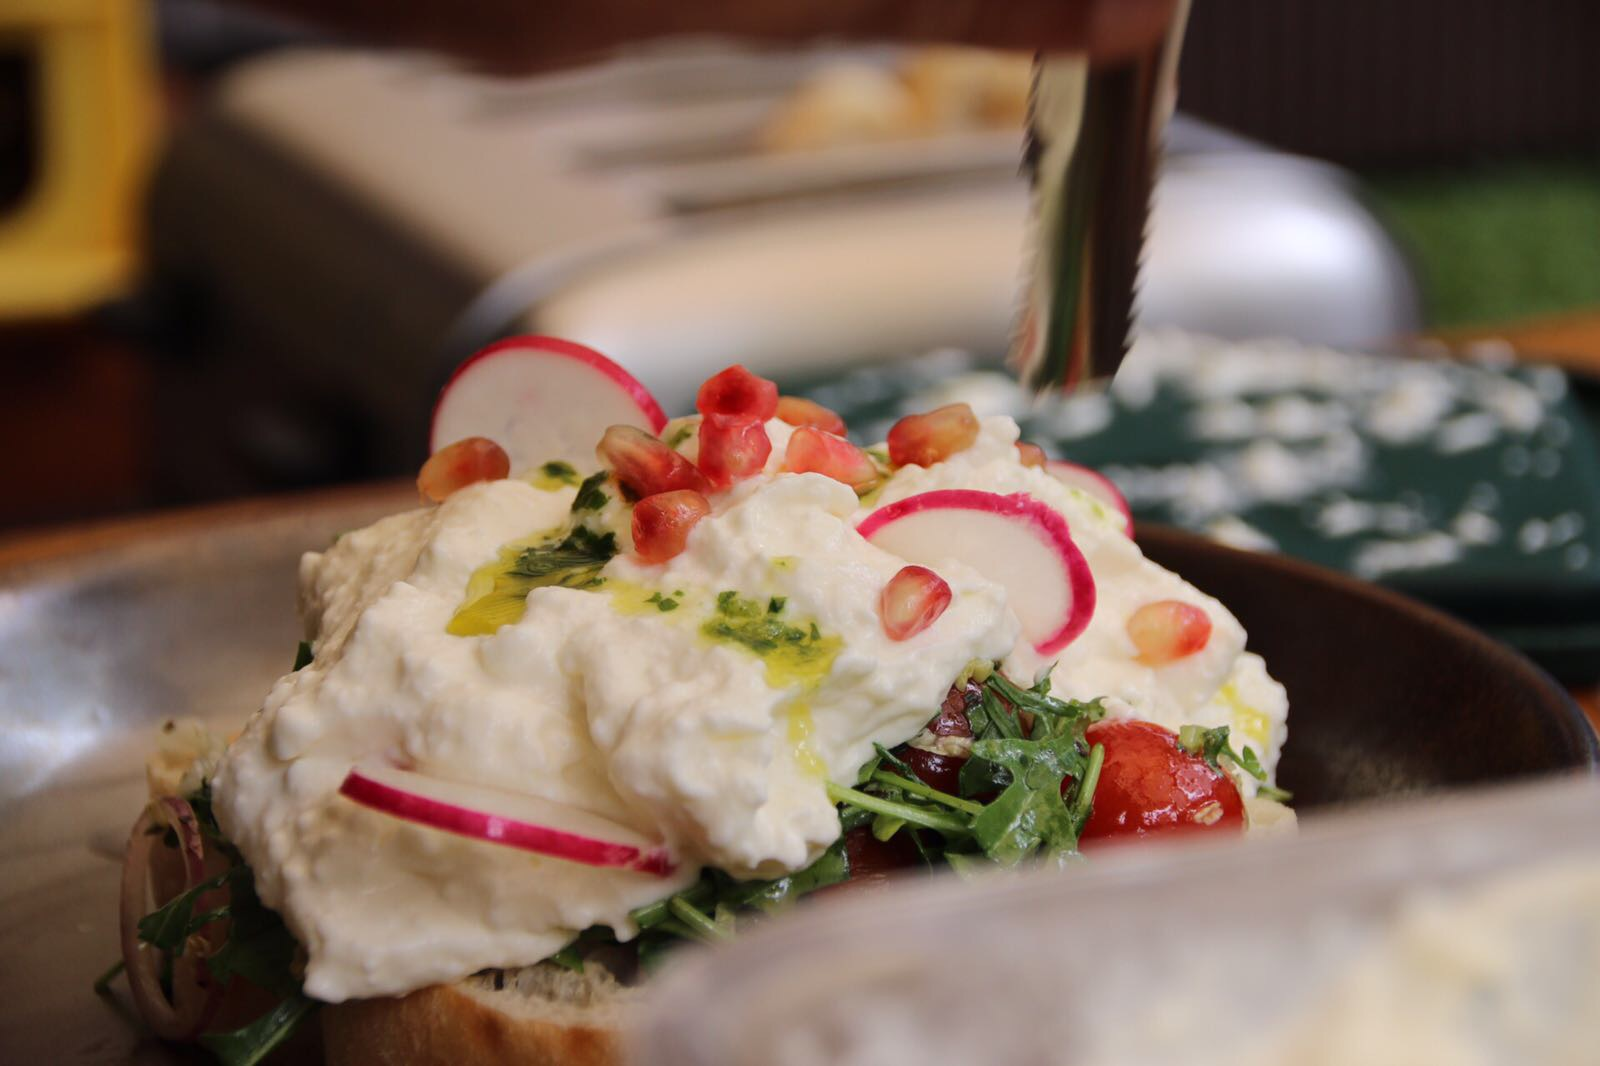 Artichoke Brunch - Feta Burrata